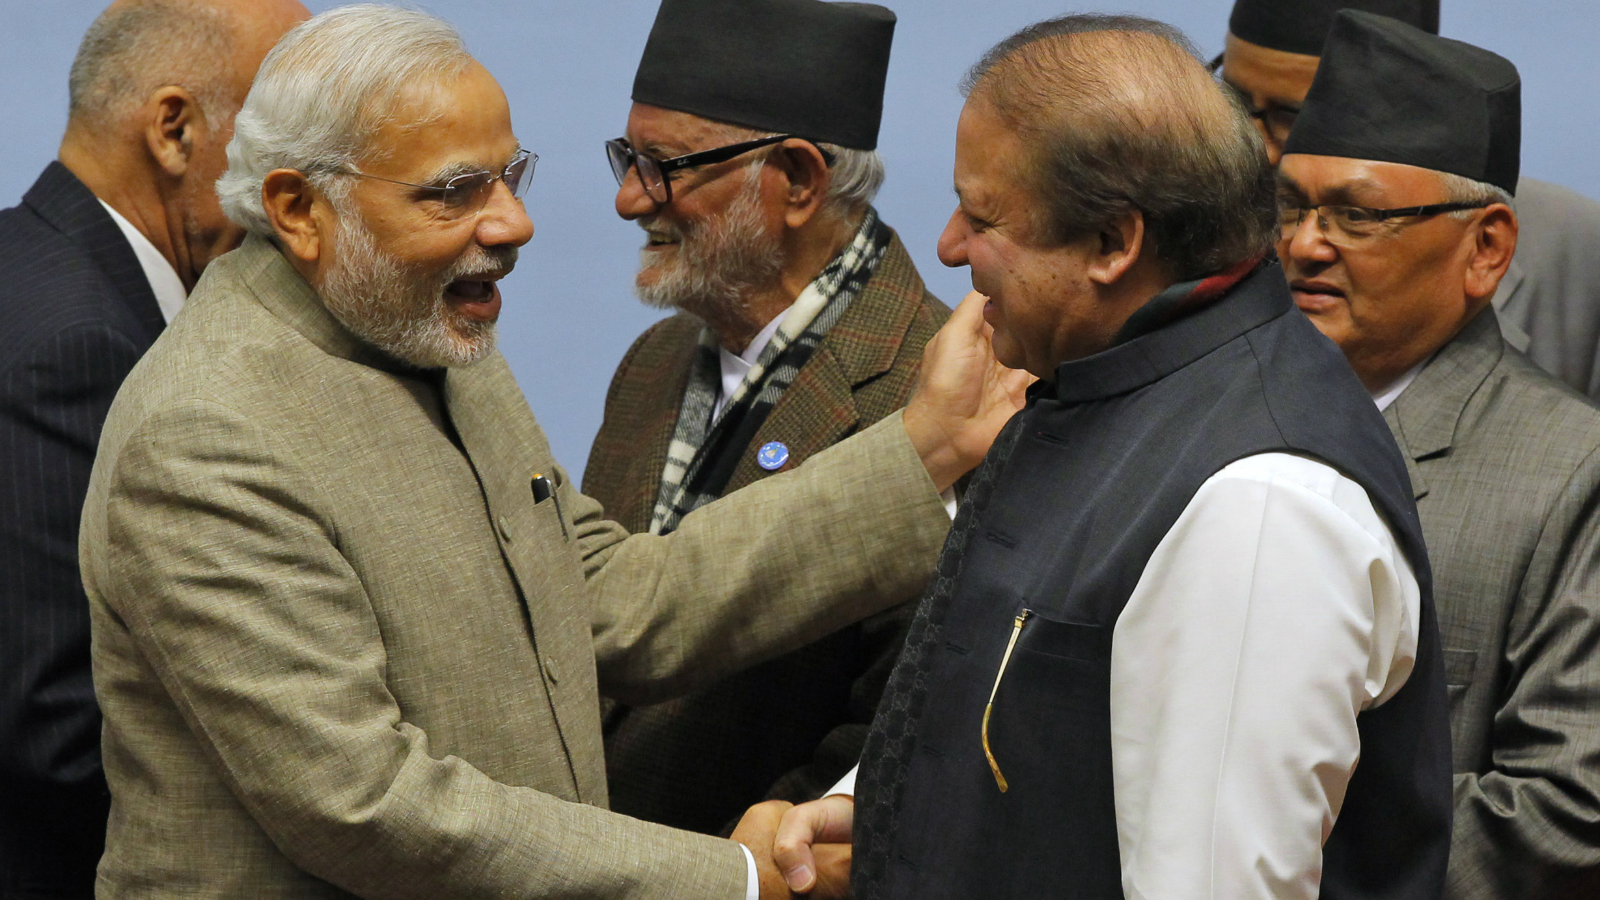 Pakistani Prime Minister Nawaz Sharif, right, and Indian Prime Minister Narendra Modi shake hands during the closing session of the 18th summit of the South Asian Association for Regional Cooperation (SAARC) in Katmandu, Nepal, Thursday, Nov. 27, 2014. South Asian heads of state attending their first summit in three years reached a deal on energy sharing Thursday, but failed on two other economic agreements during a retreat where Indian and Pakistan leaders shook hands. (